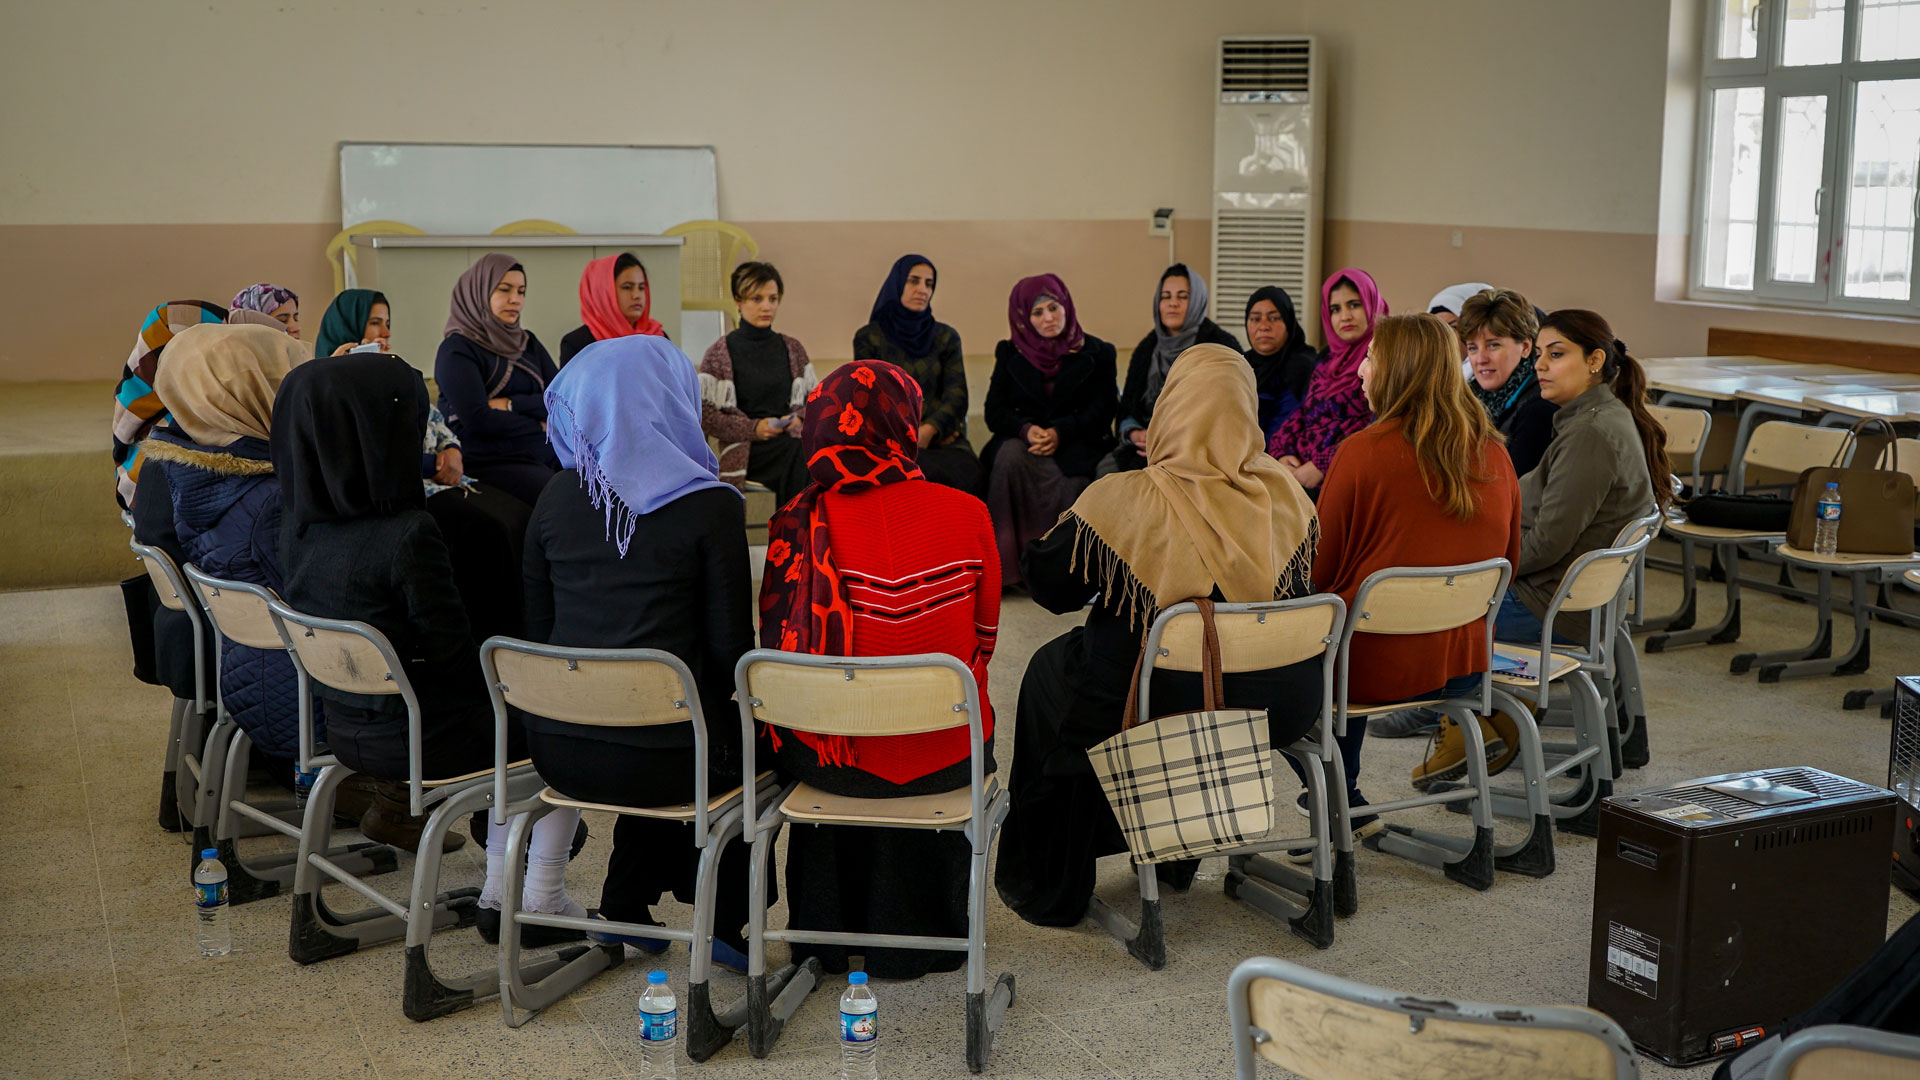 Minister Bibeau takes part in a roundtable with local women in Iraq.